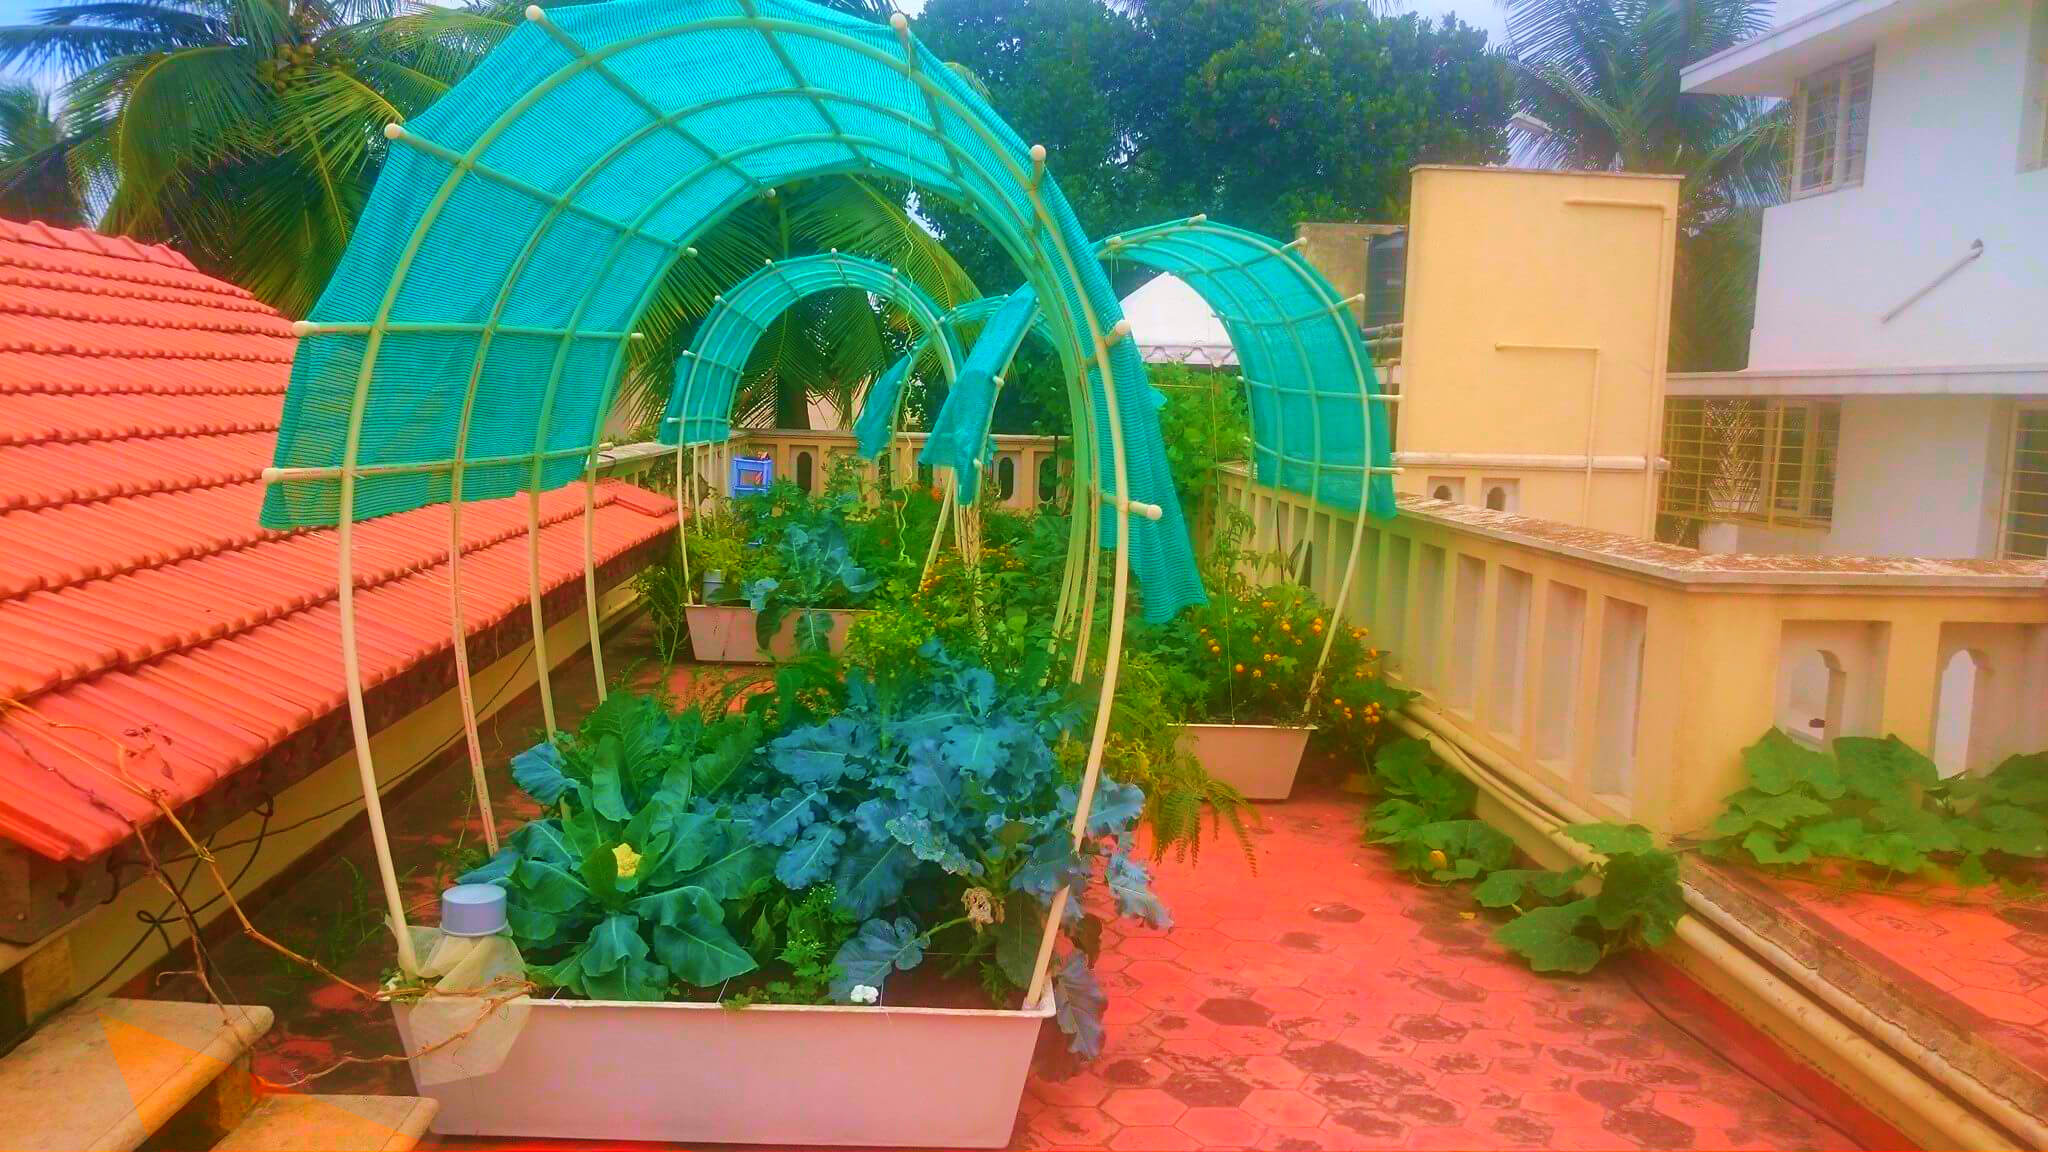 Smart Garden - Self Watering Organic Terrace Garden